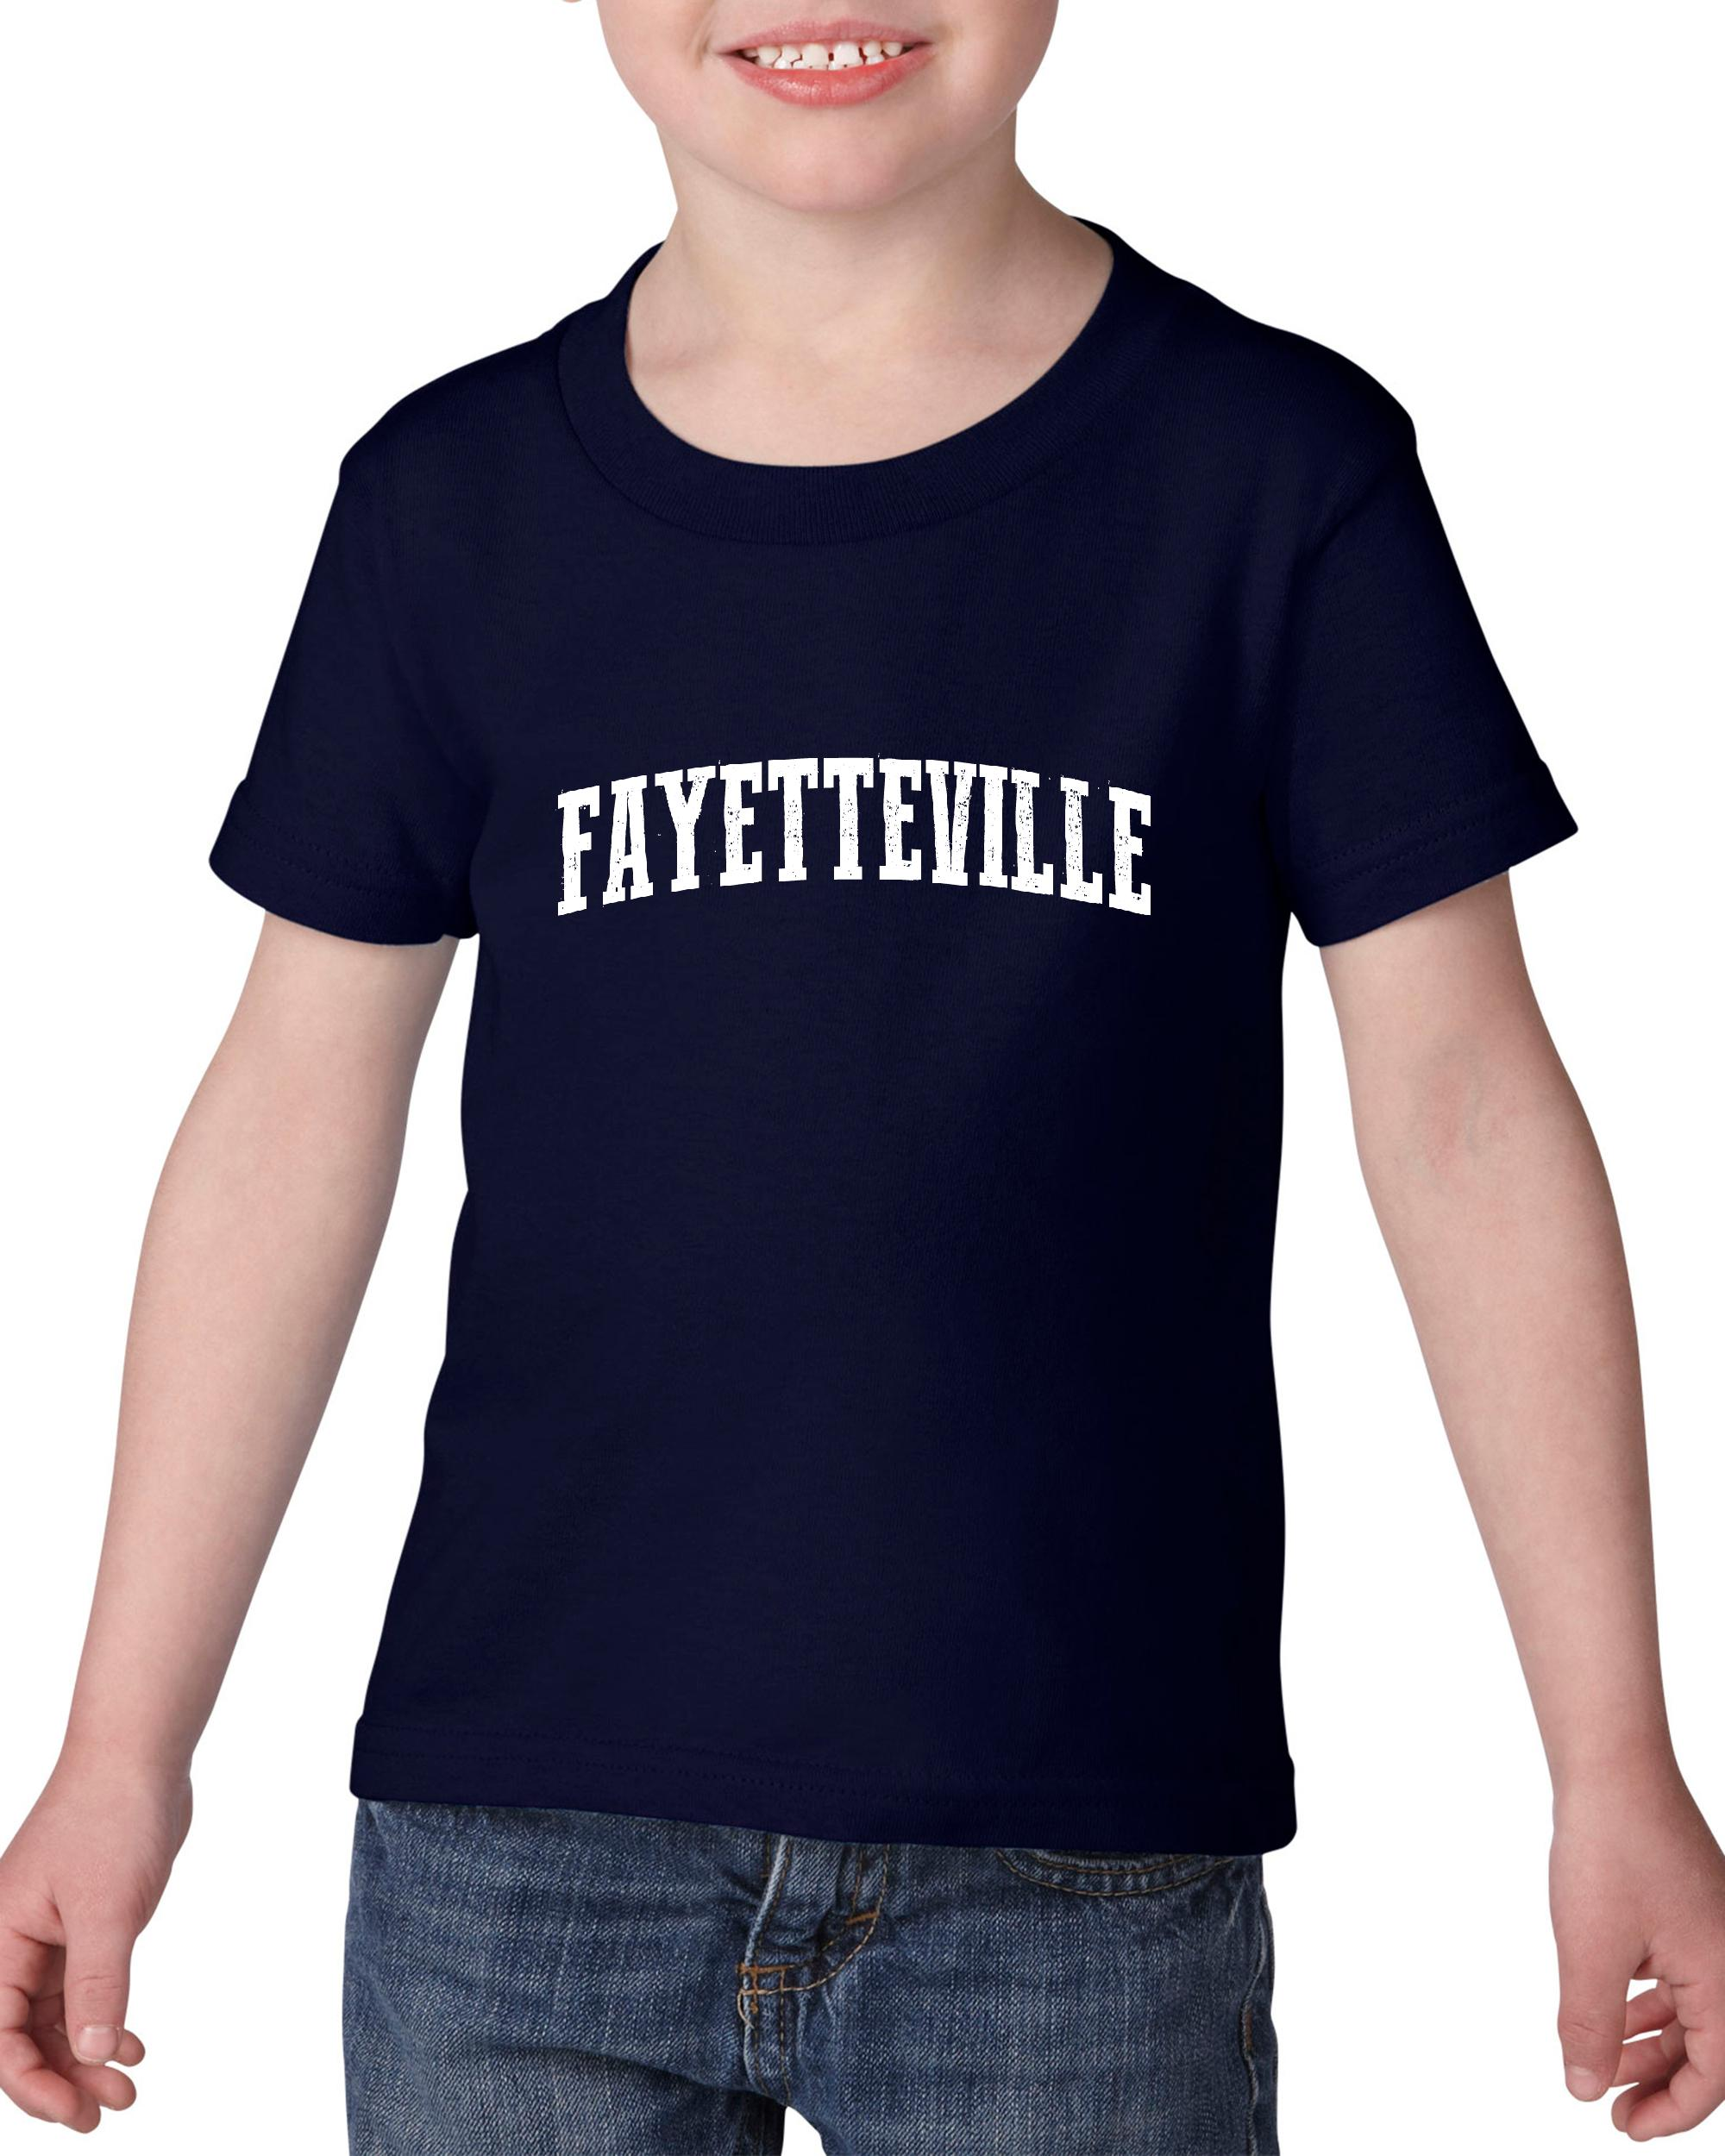 T Shirts Made In Fayetteville Nc   Coolmine Community School